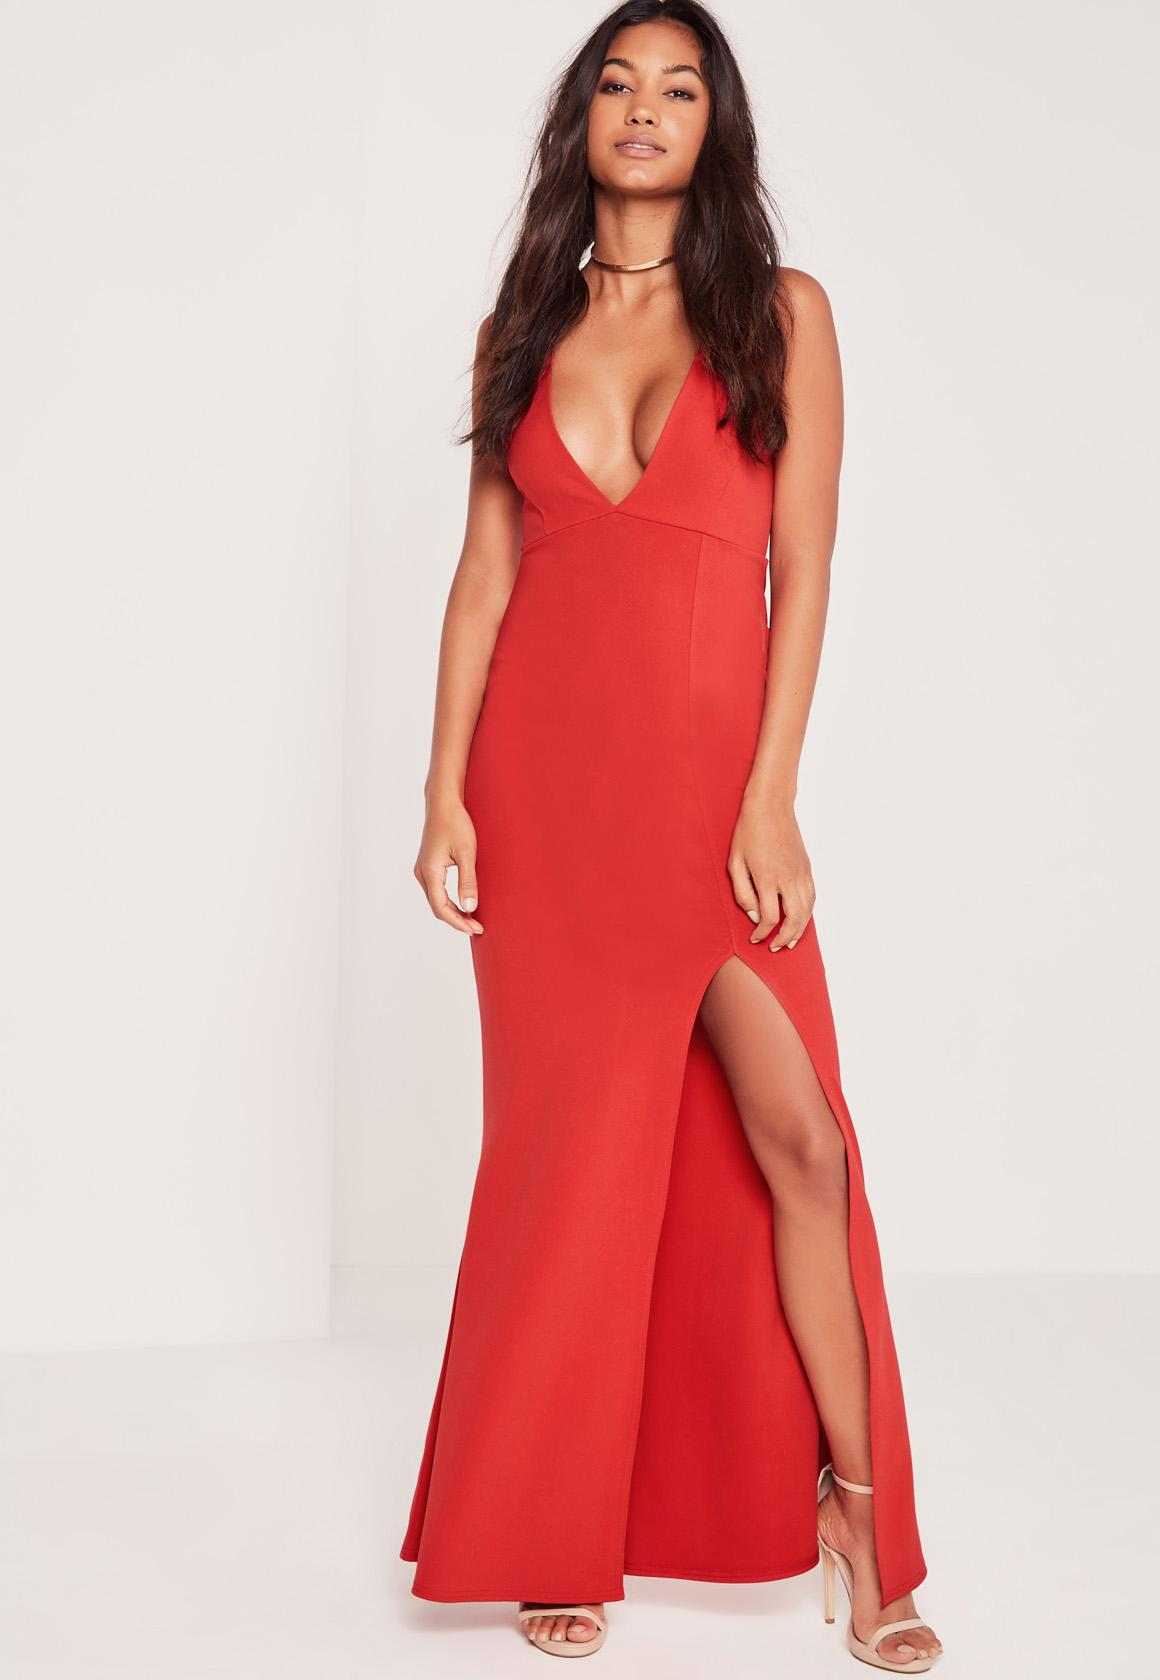 Red slinky maxi dress